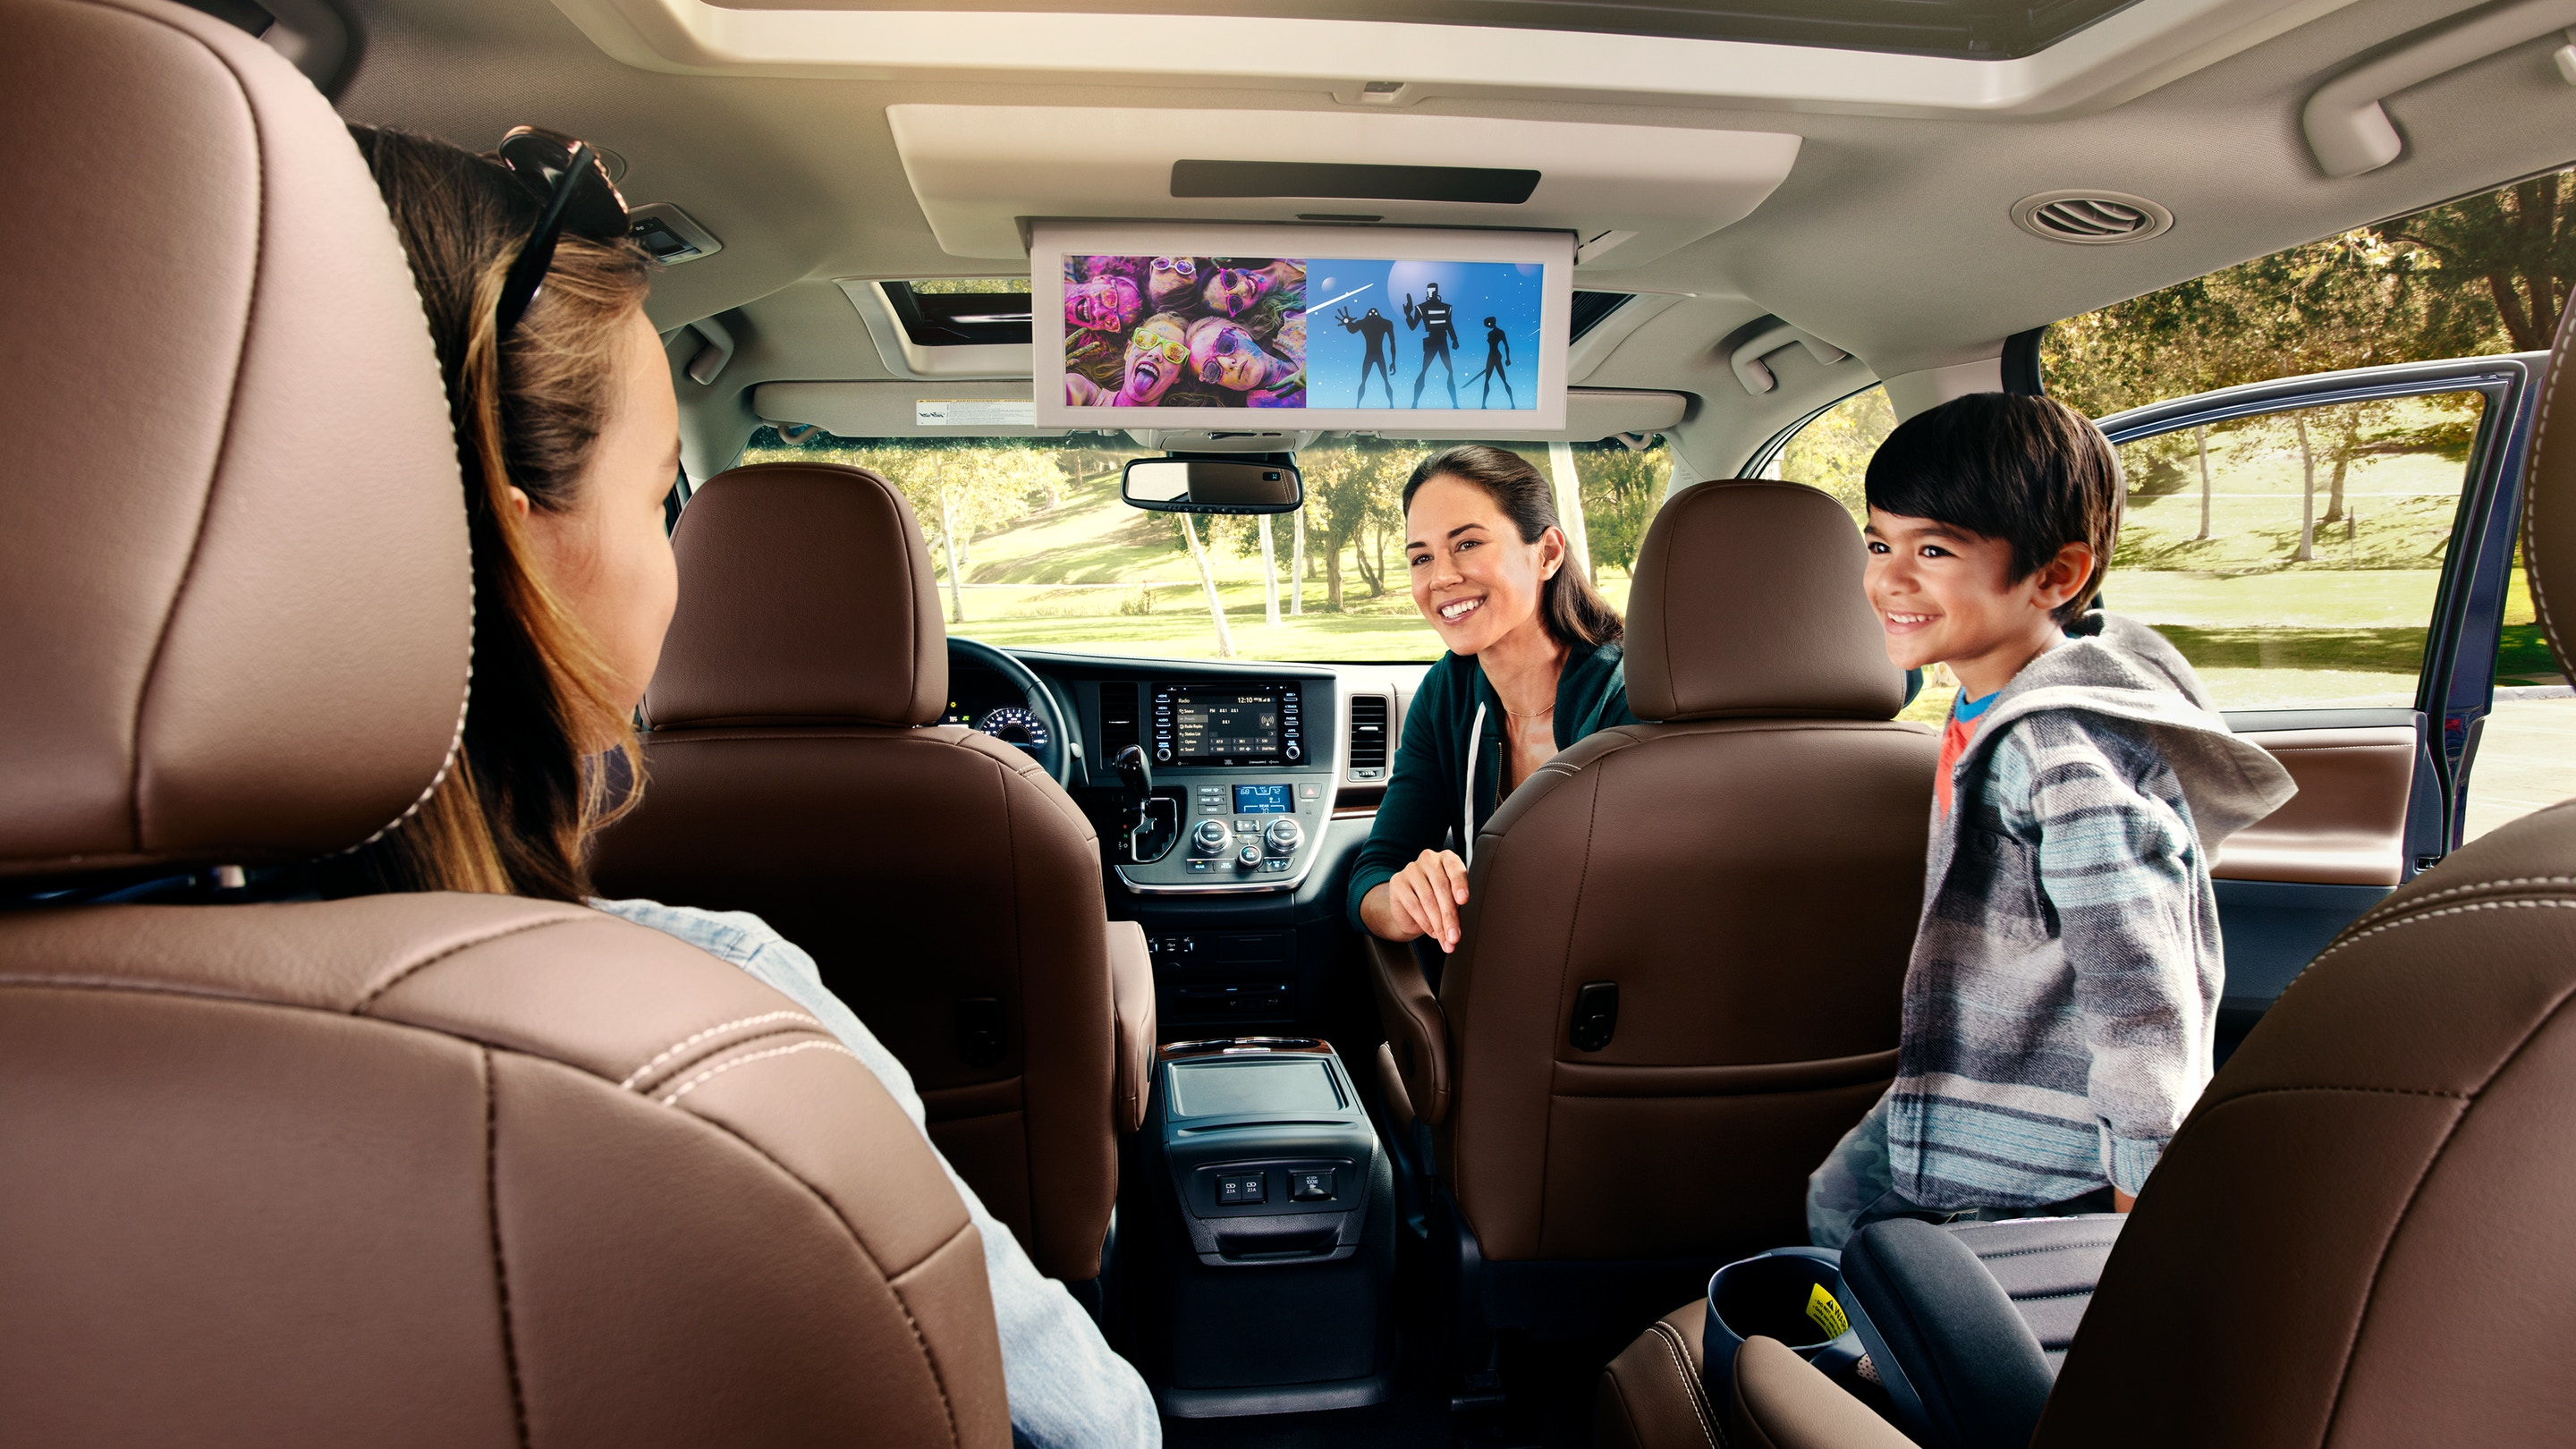 The Sienna was Built for the Whole Family!